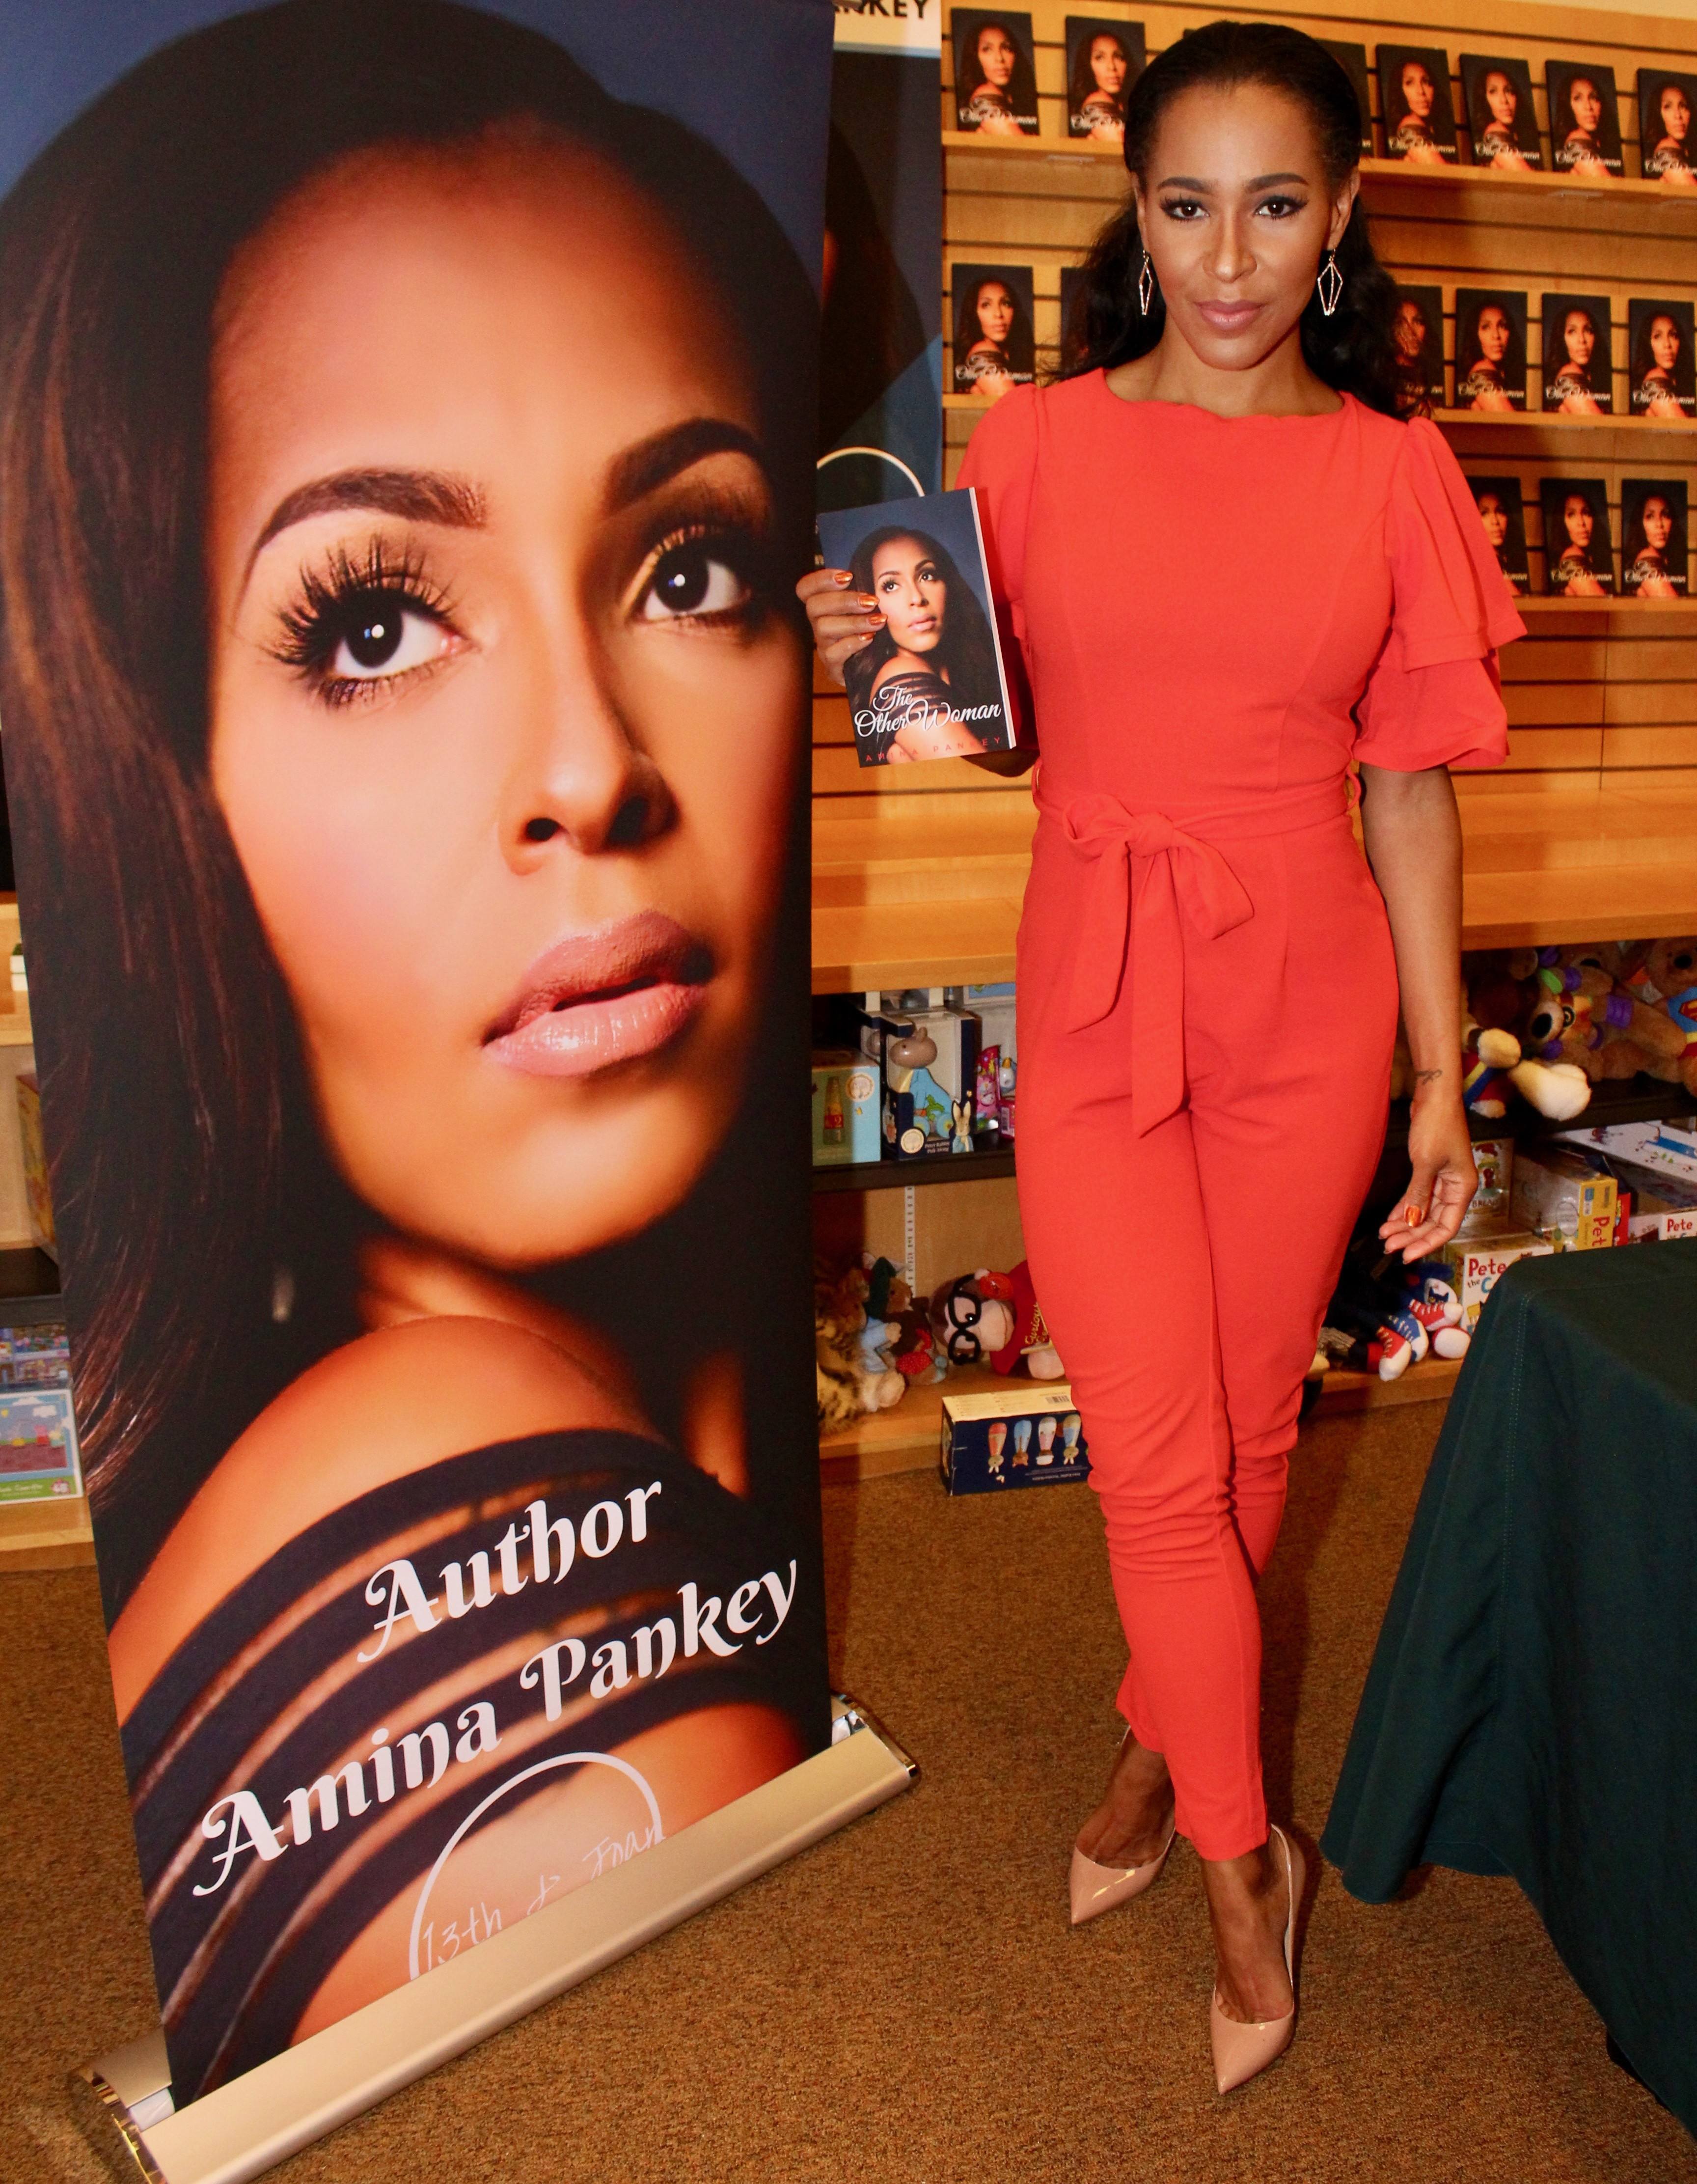 SOCIAL: AMINA PANKEY THE OTHER WOMAN BOOK TOUR *ATLANTA